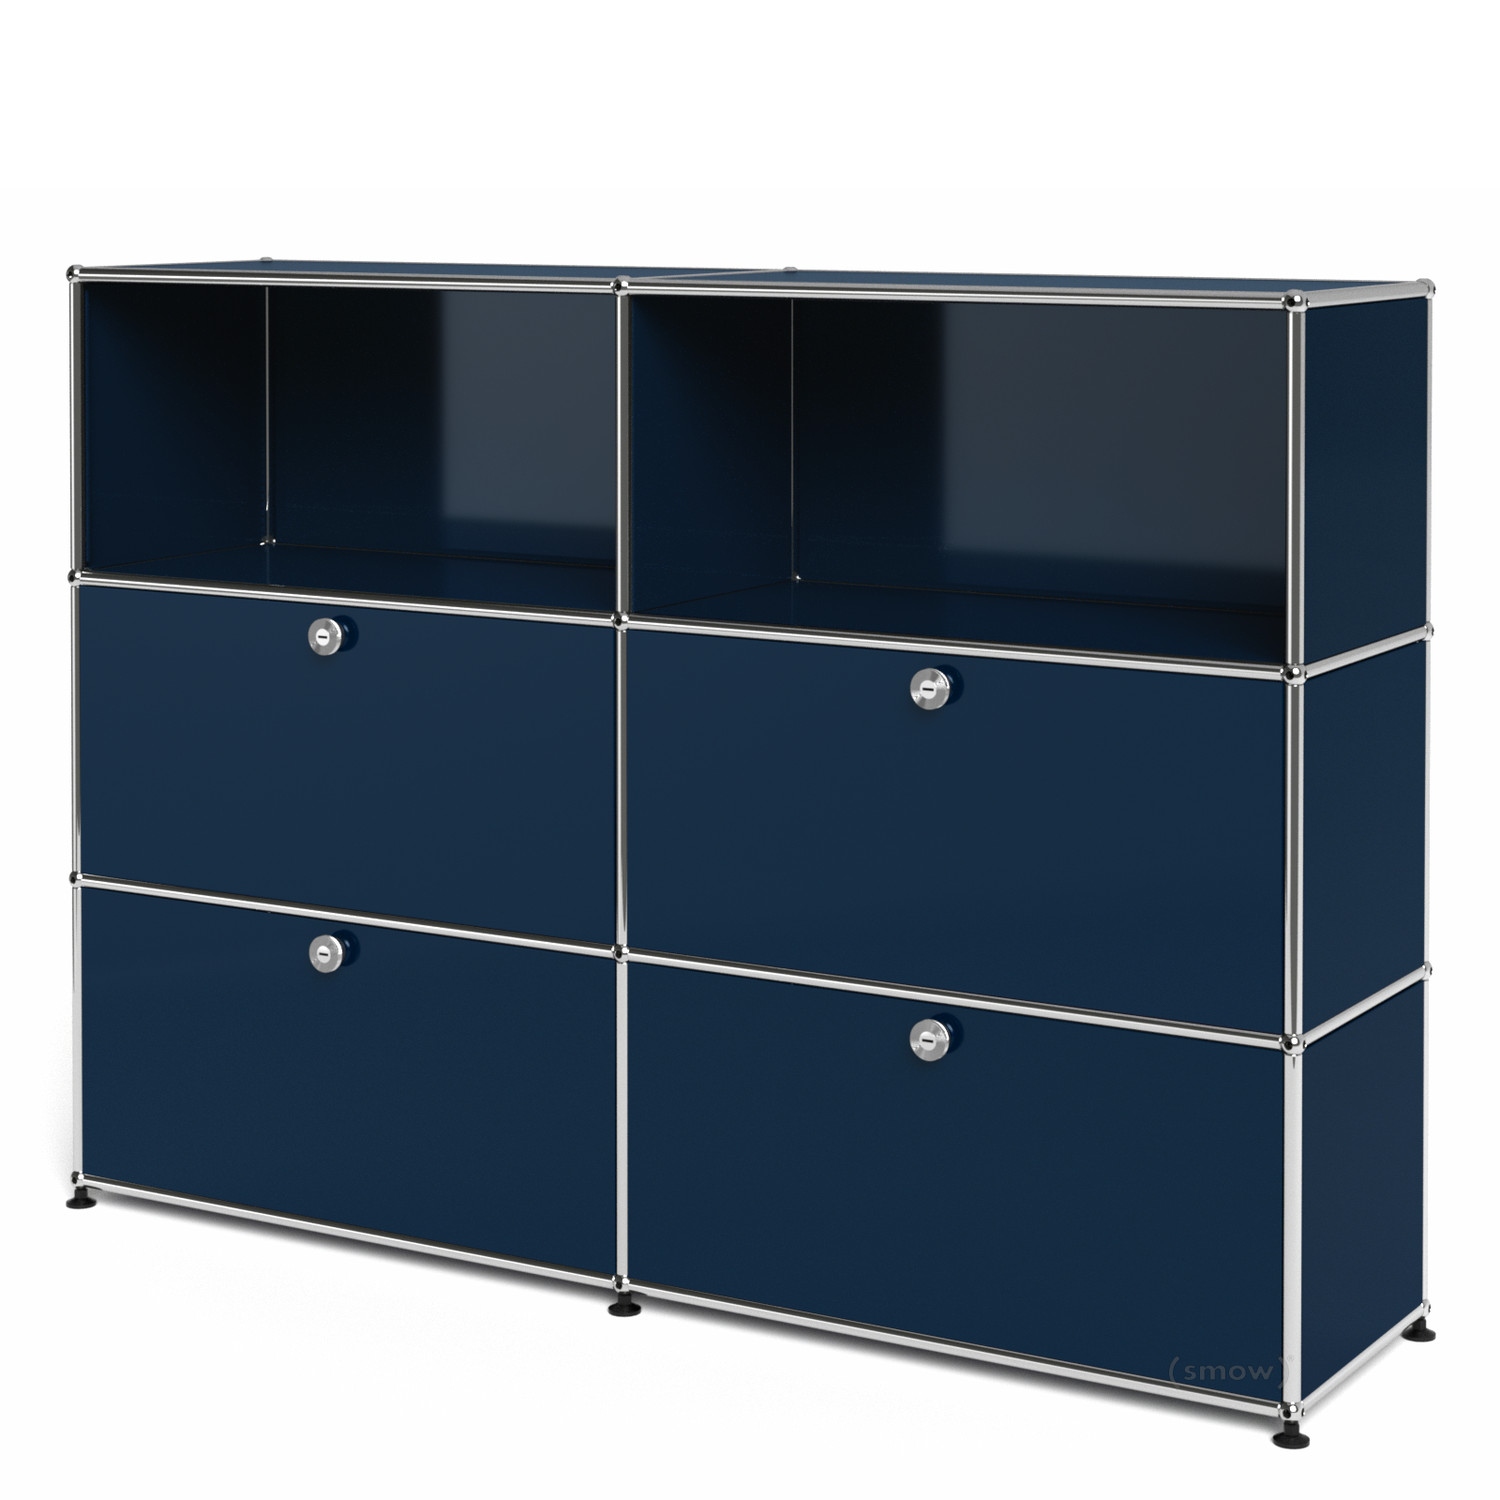 usm haller highboard l mit 4 klappen stahlblau ral 5011. Black Bedroom Furniture Sets. Home Design Ideas